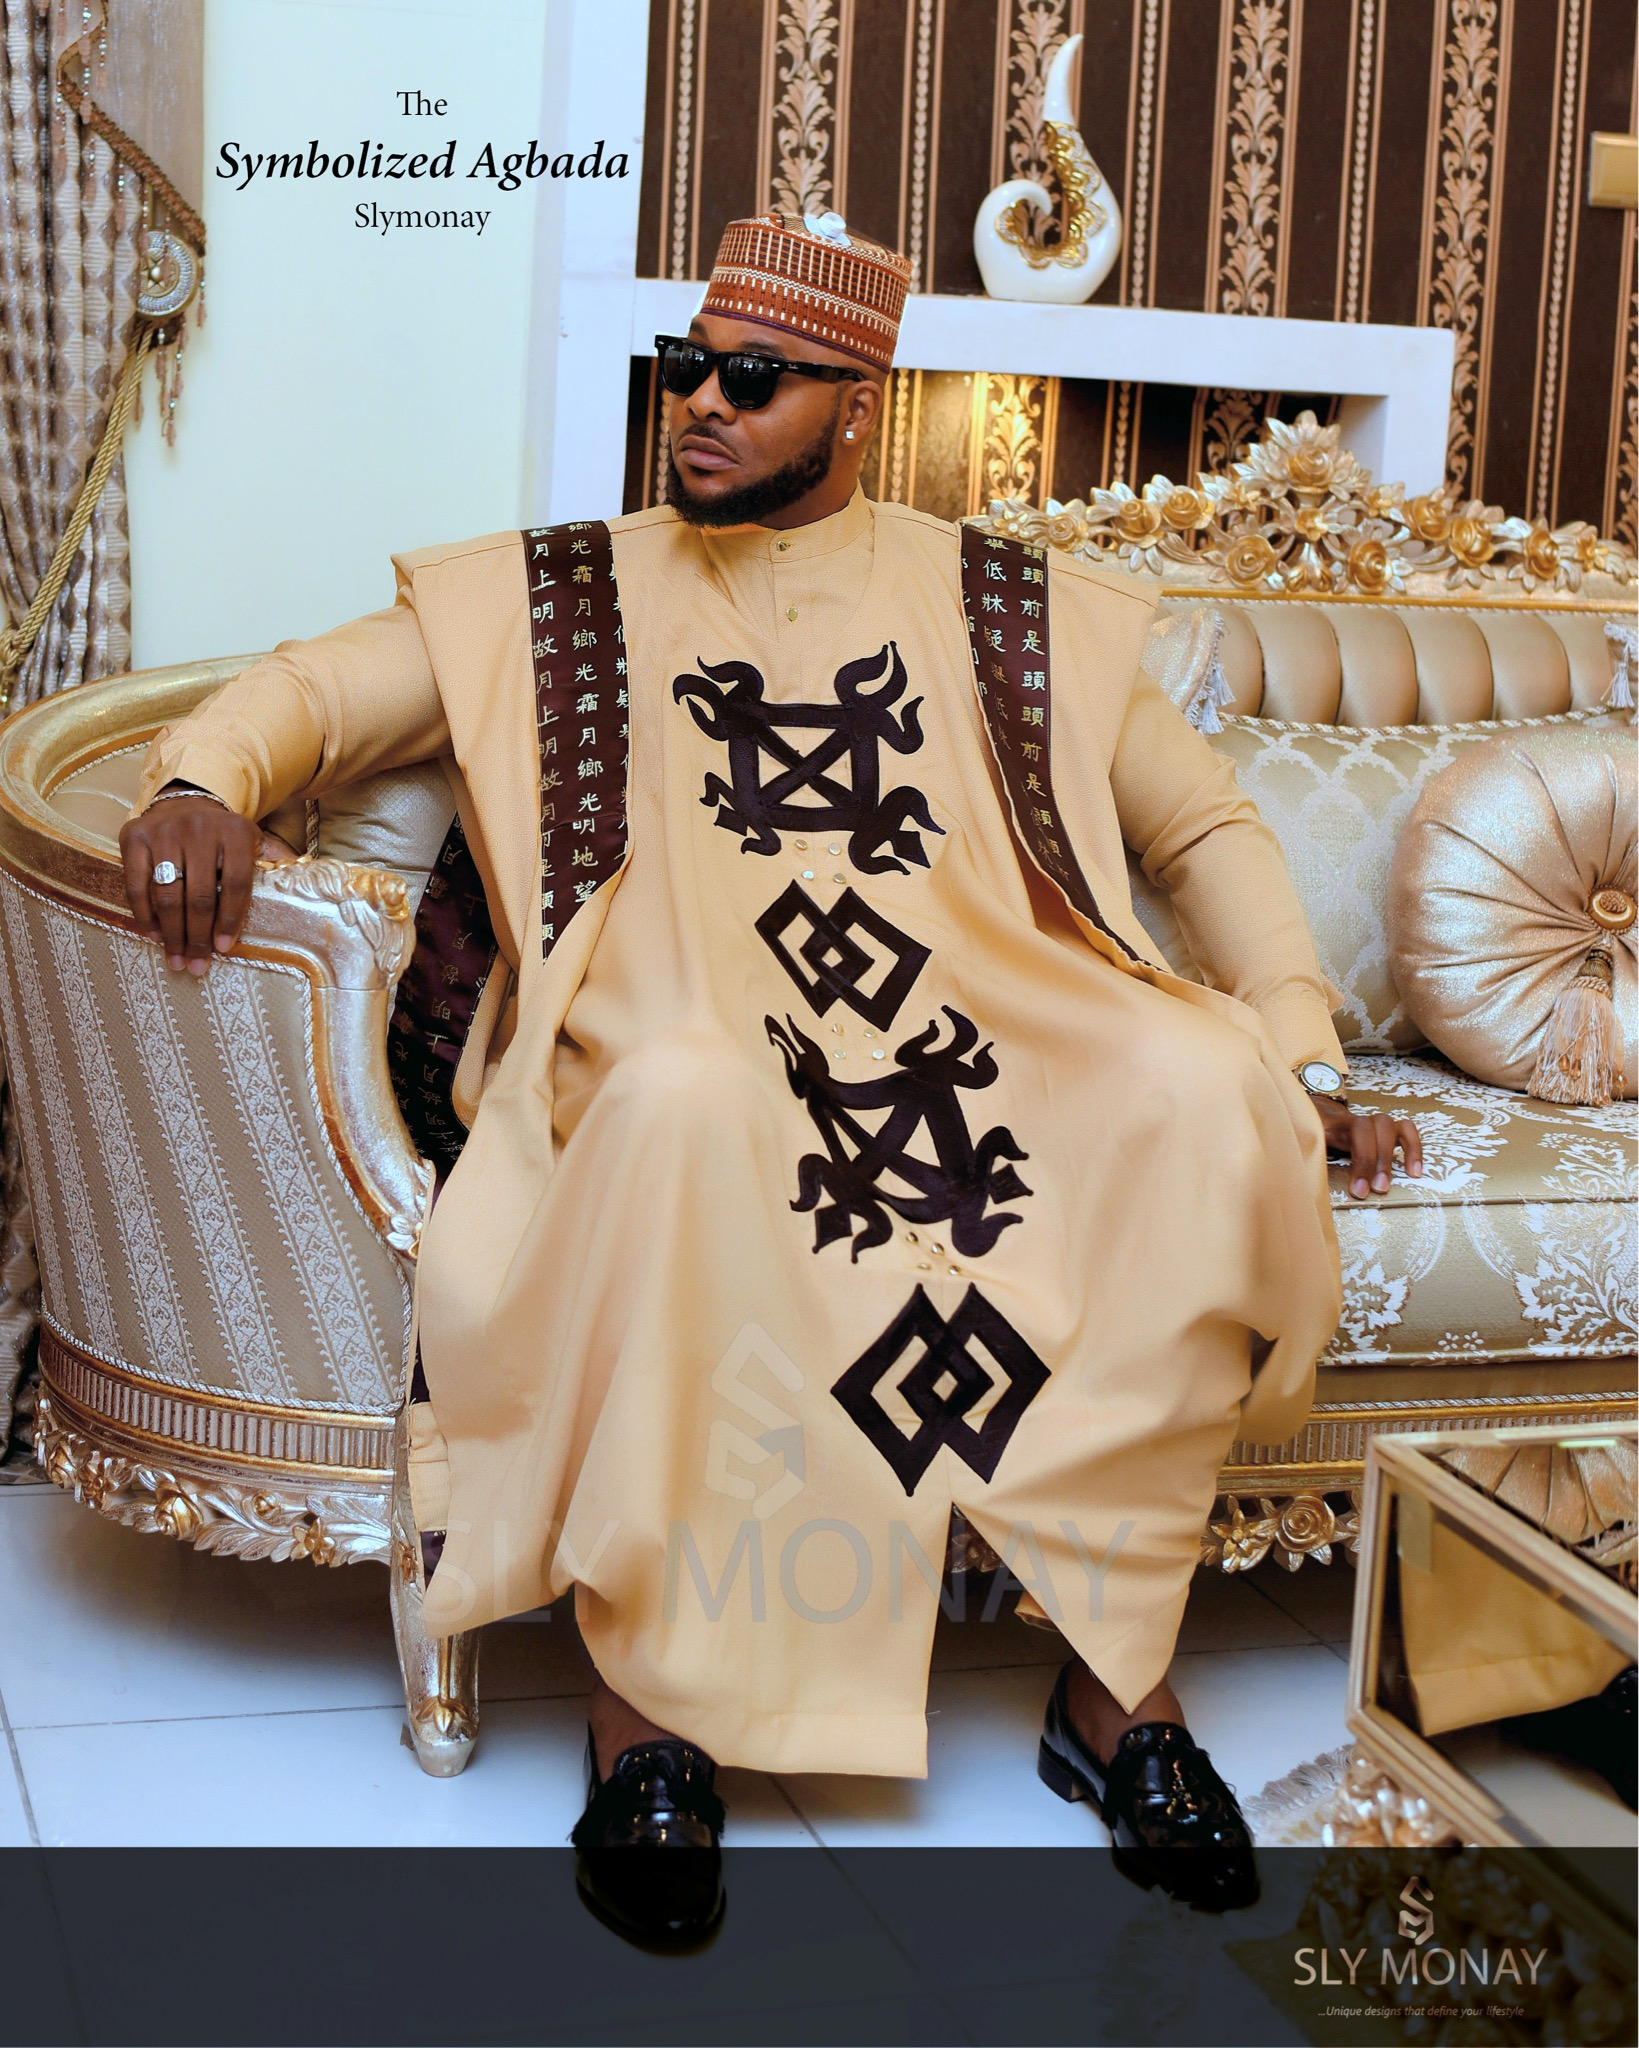 Nigerian Top Fashion Designer Sly Monay Presents Symbolized Agbada National Daily Newspaper